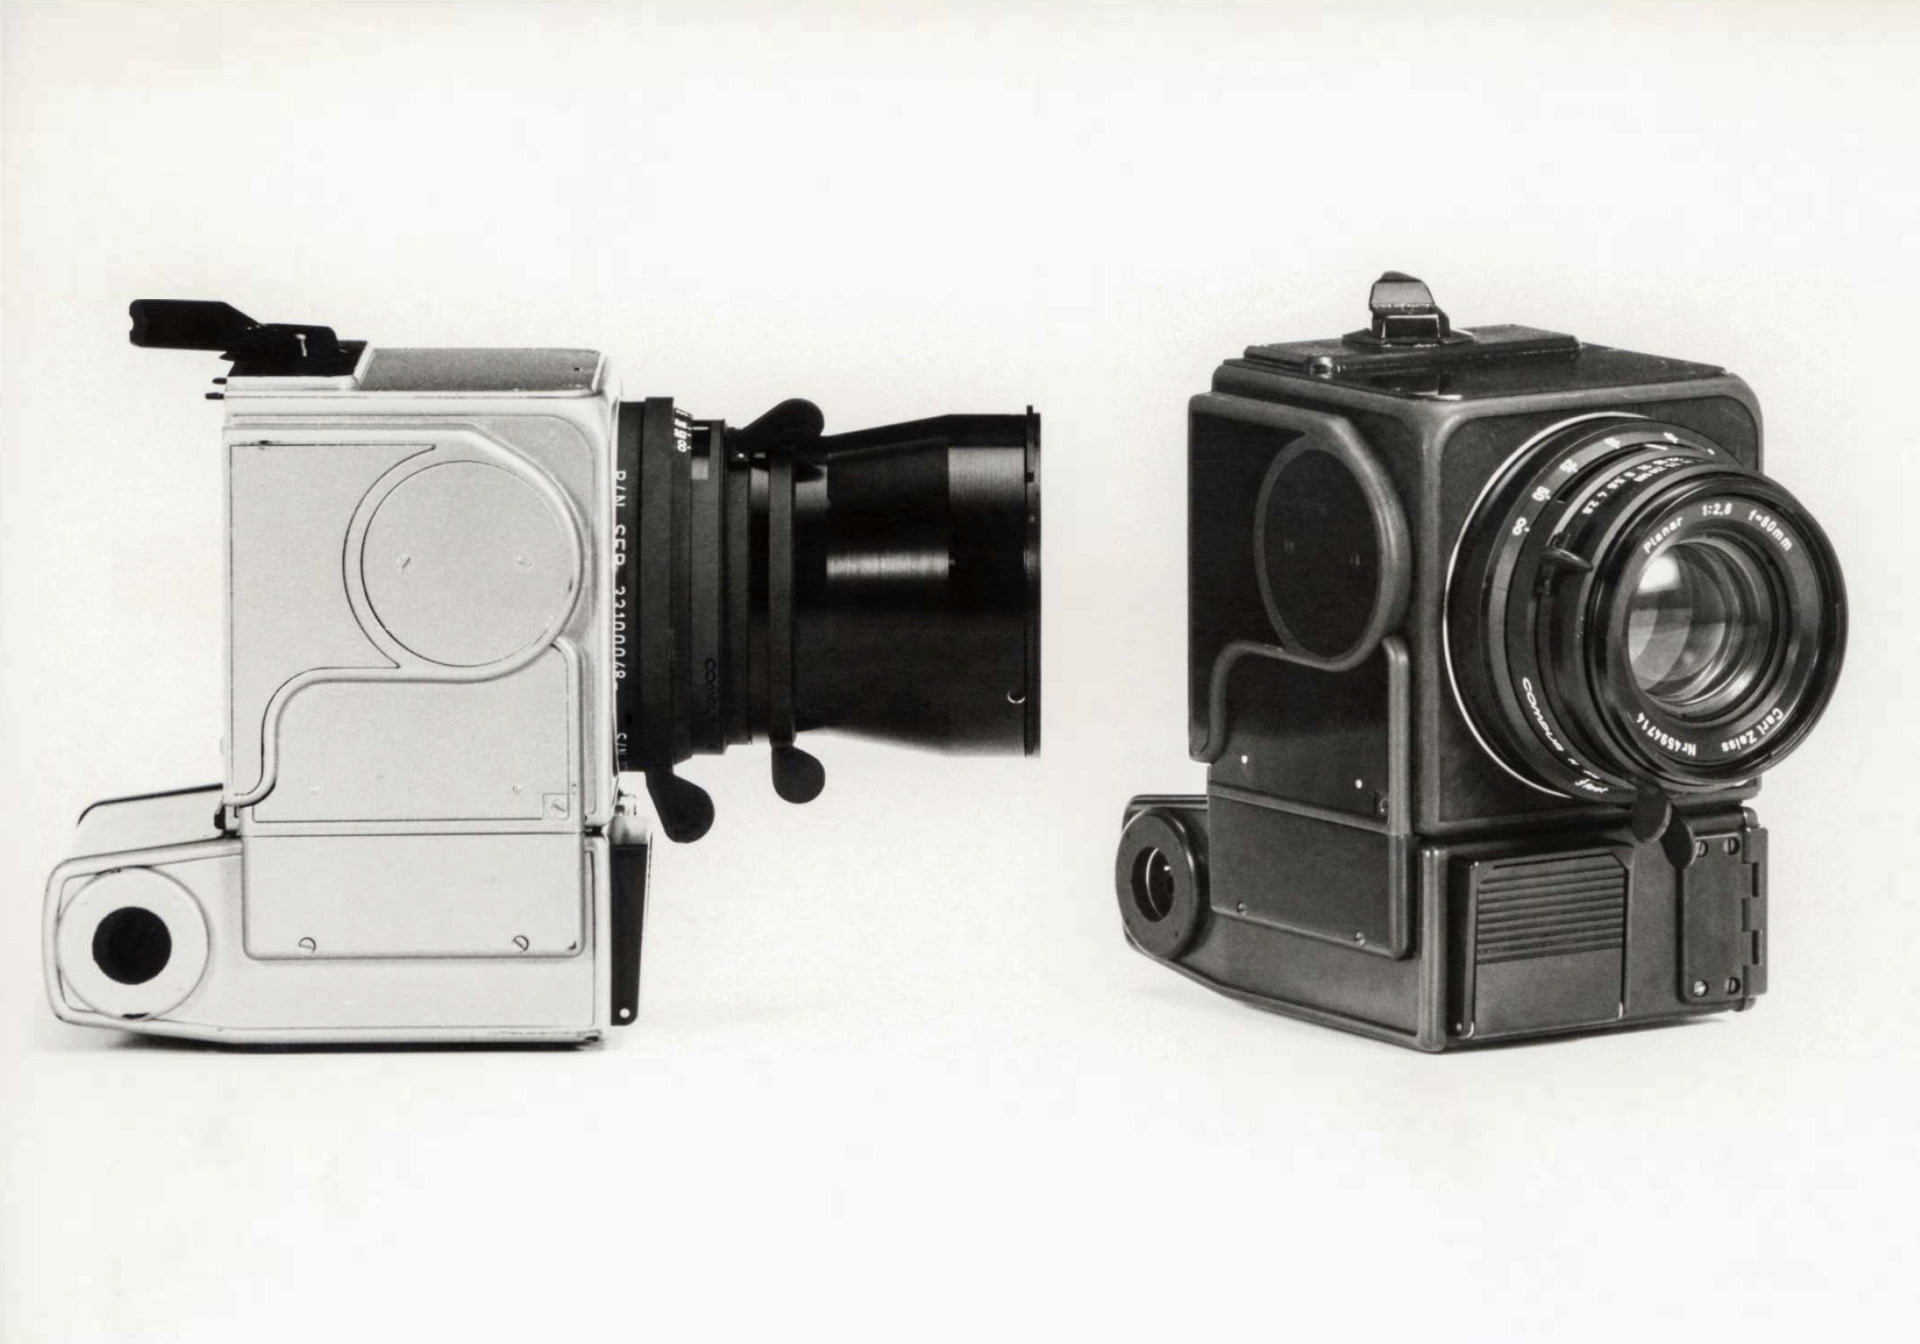 The History of the Apollo Hasselblad, the First Camera on